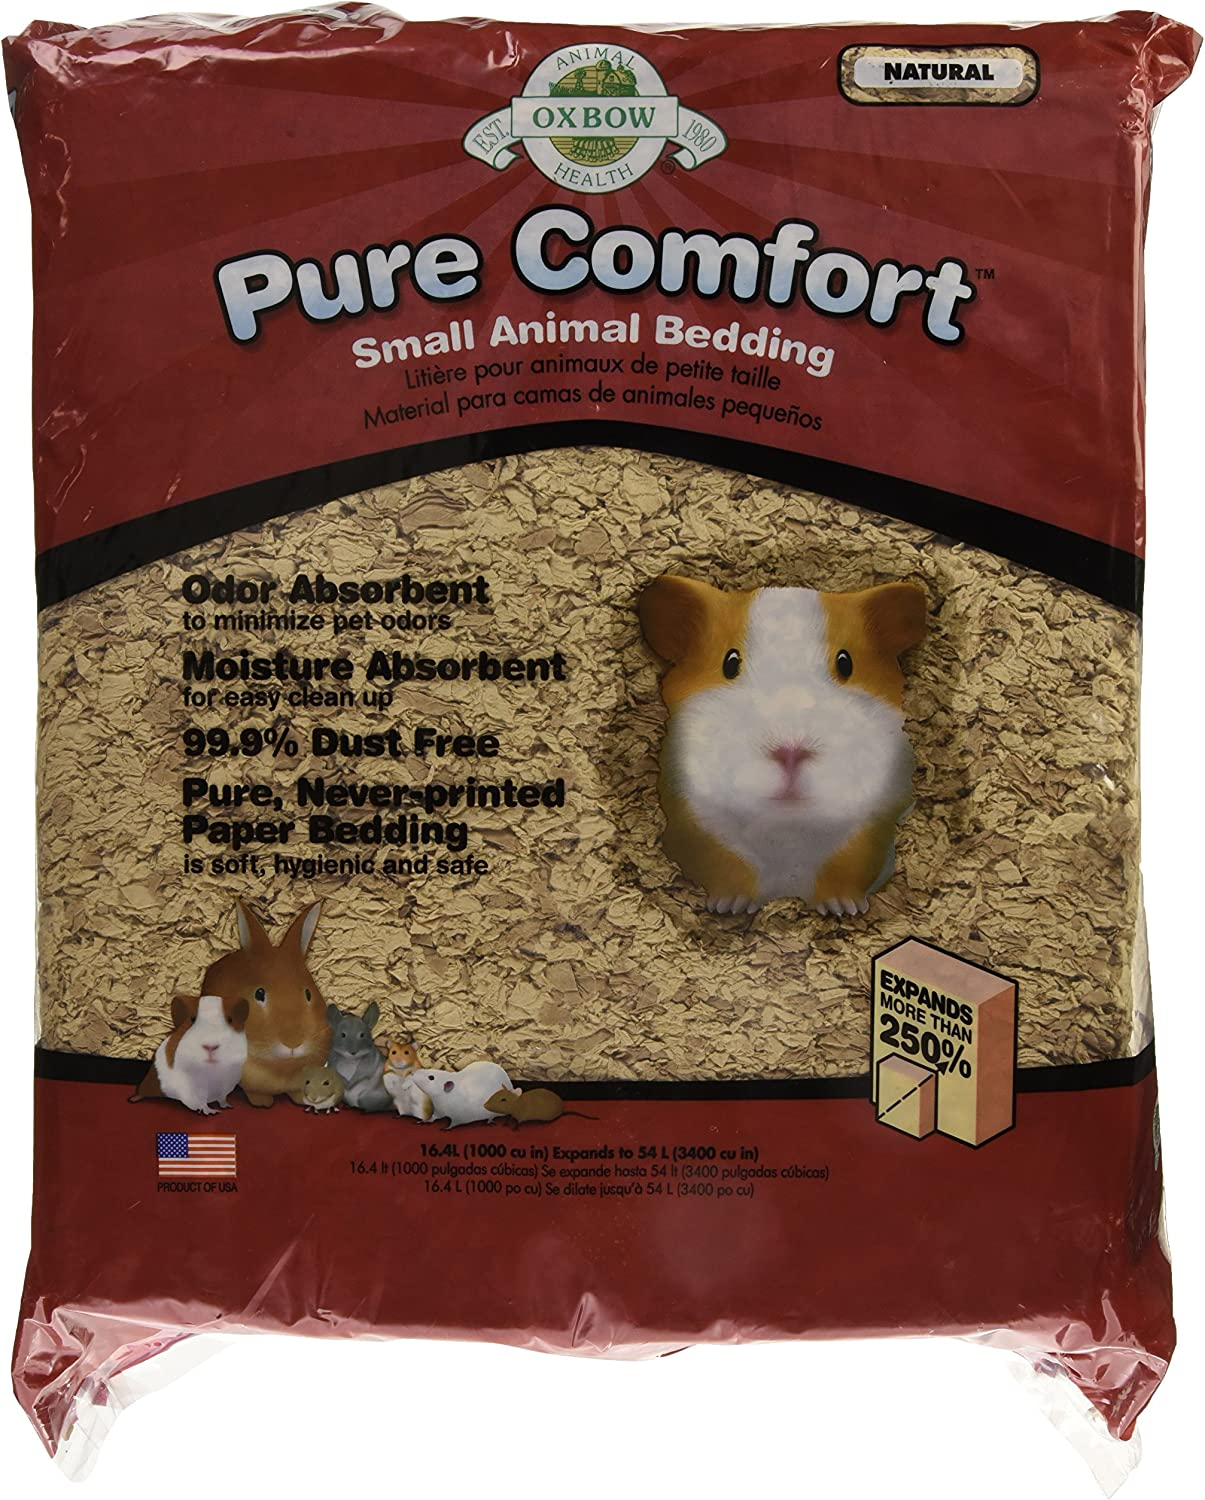 Oxbow Pure Comfort Bedding - Natural - 54 L